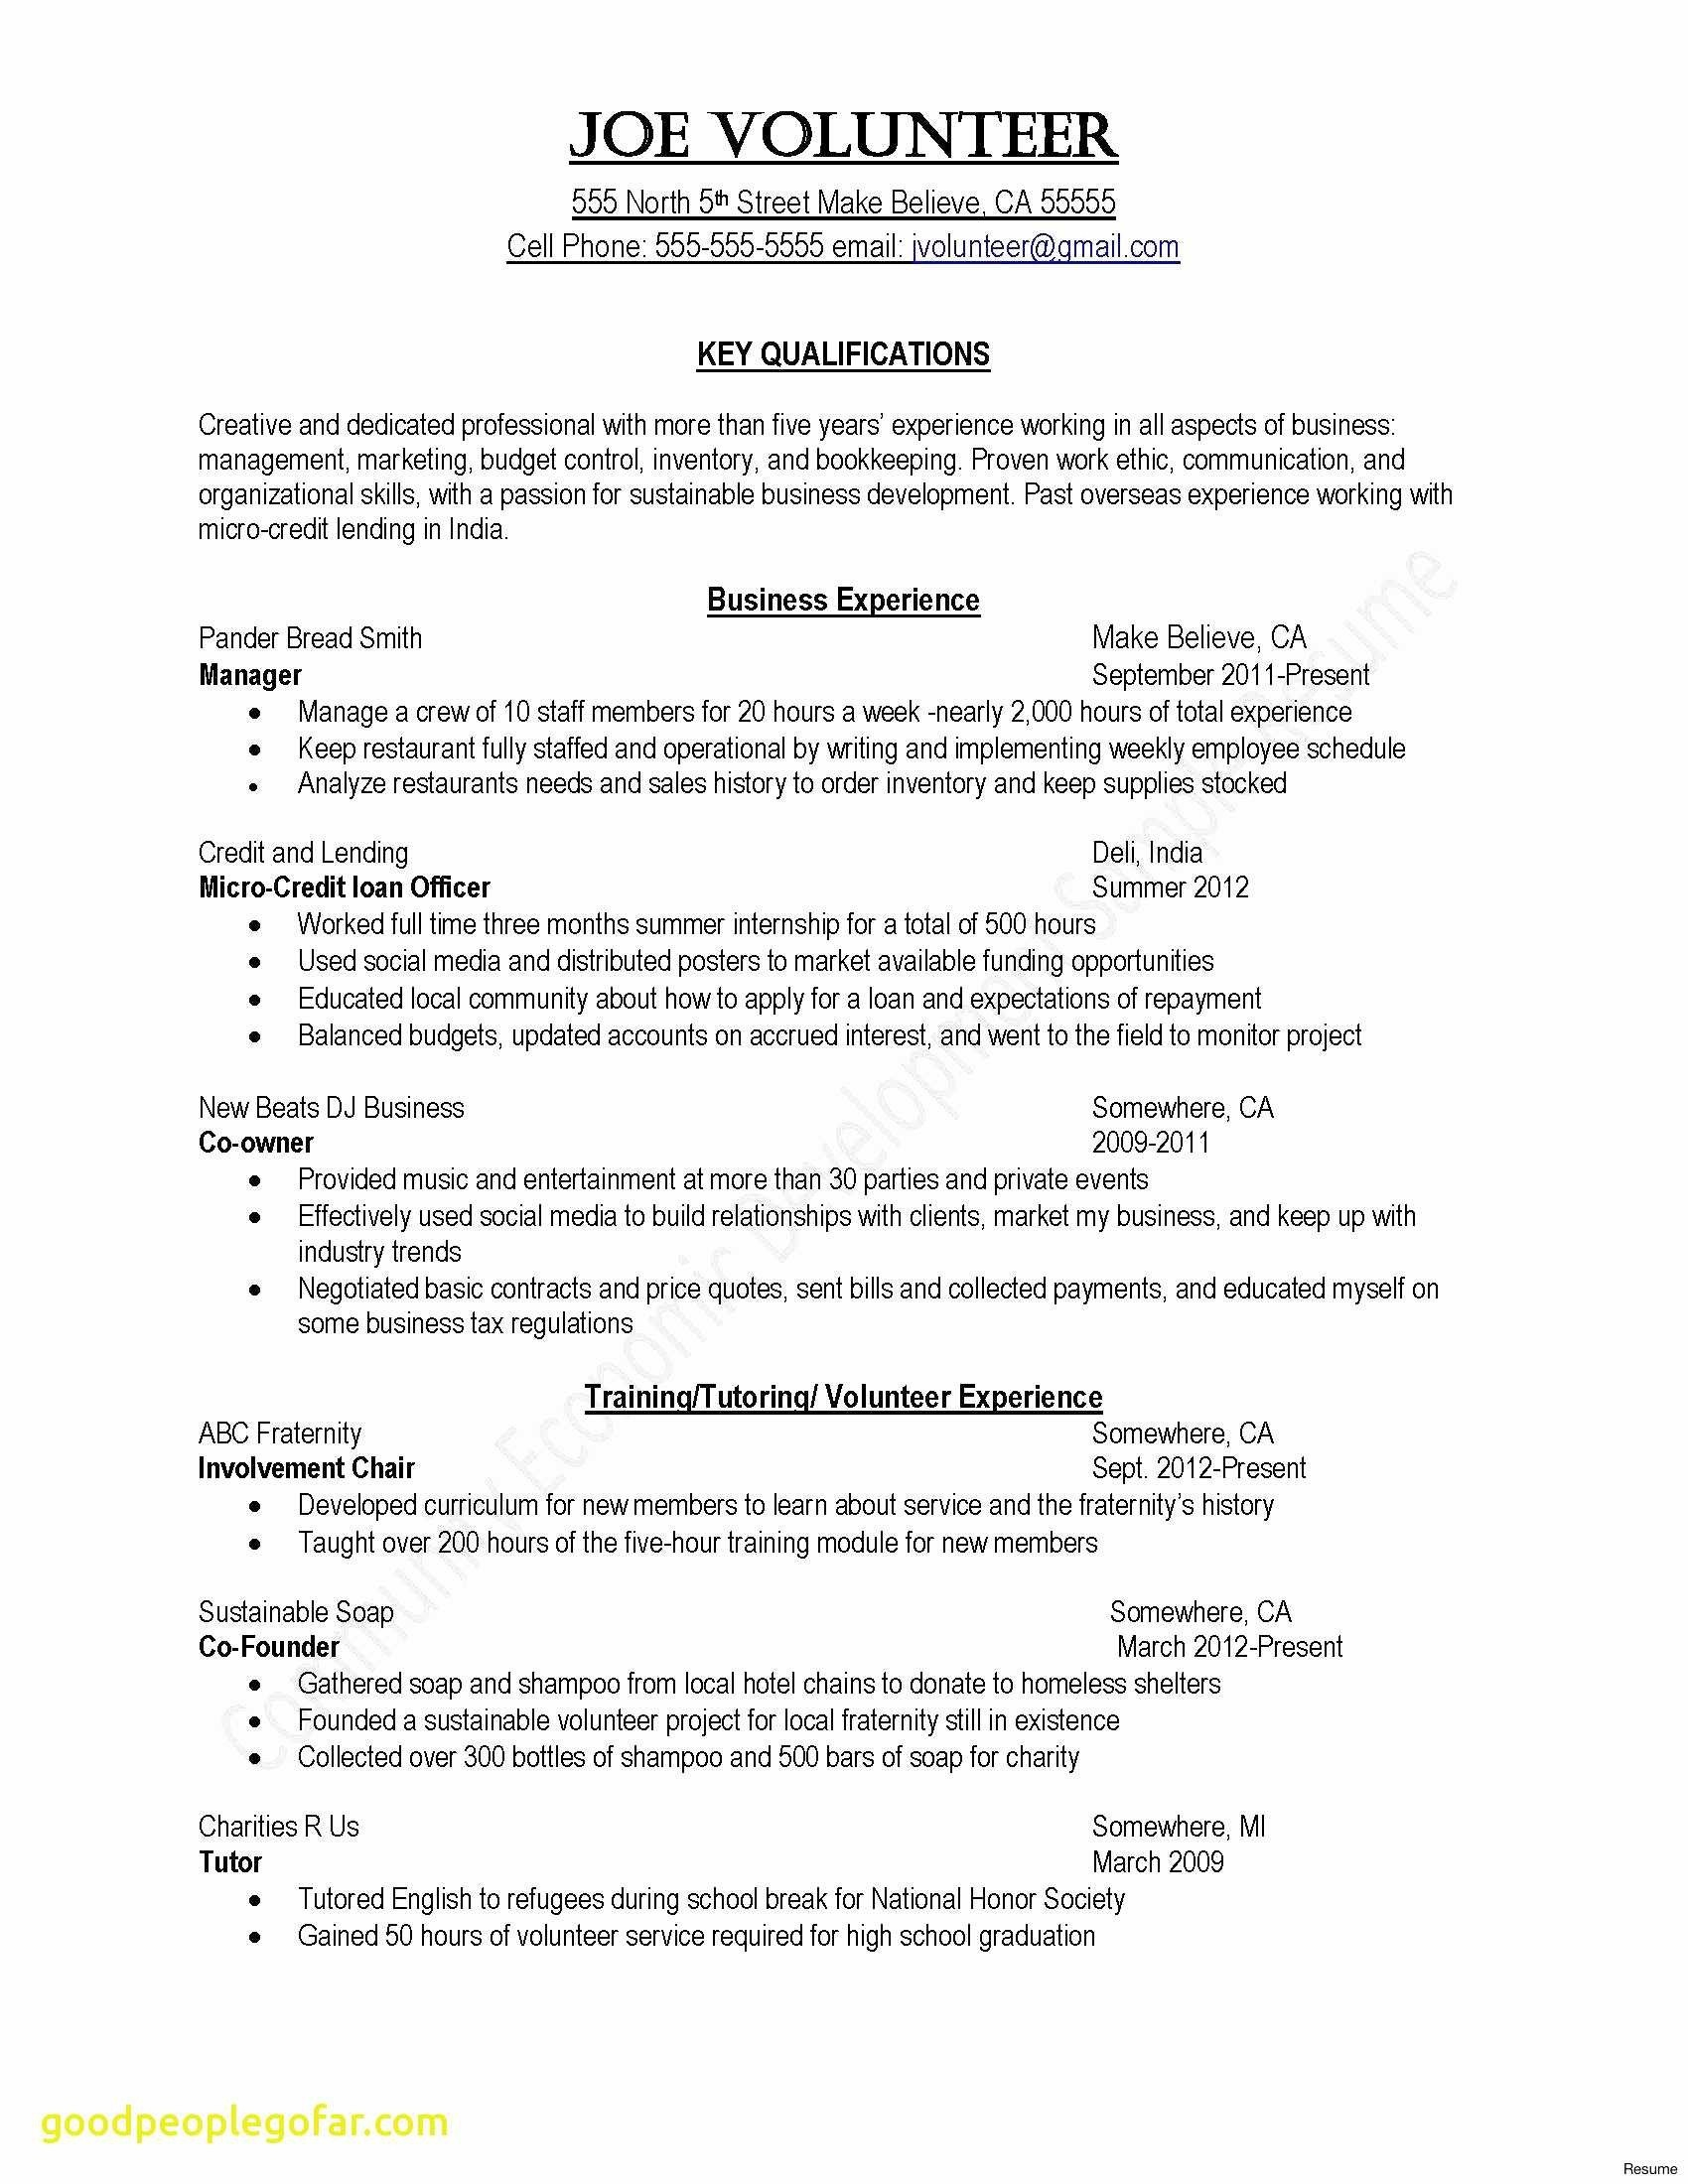 Medical School Application Resume - Billing Specialist Resume Luxury Beautiful Objective for Caregiver